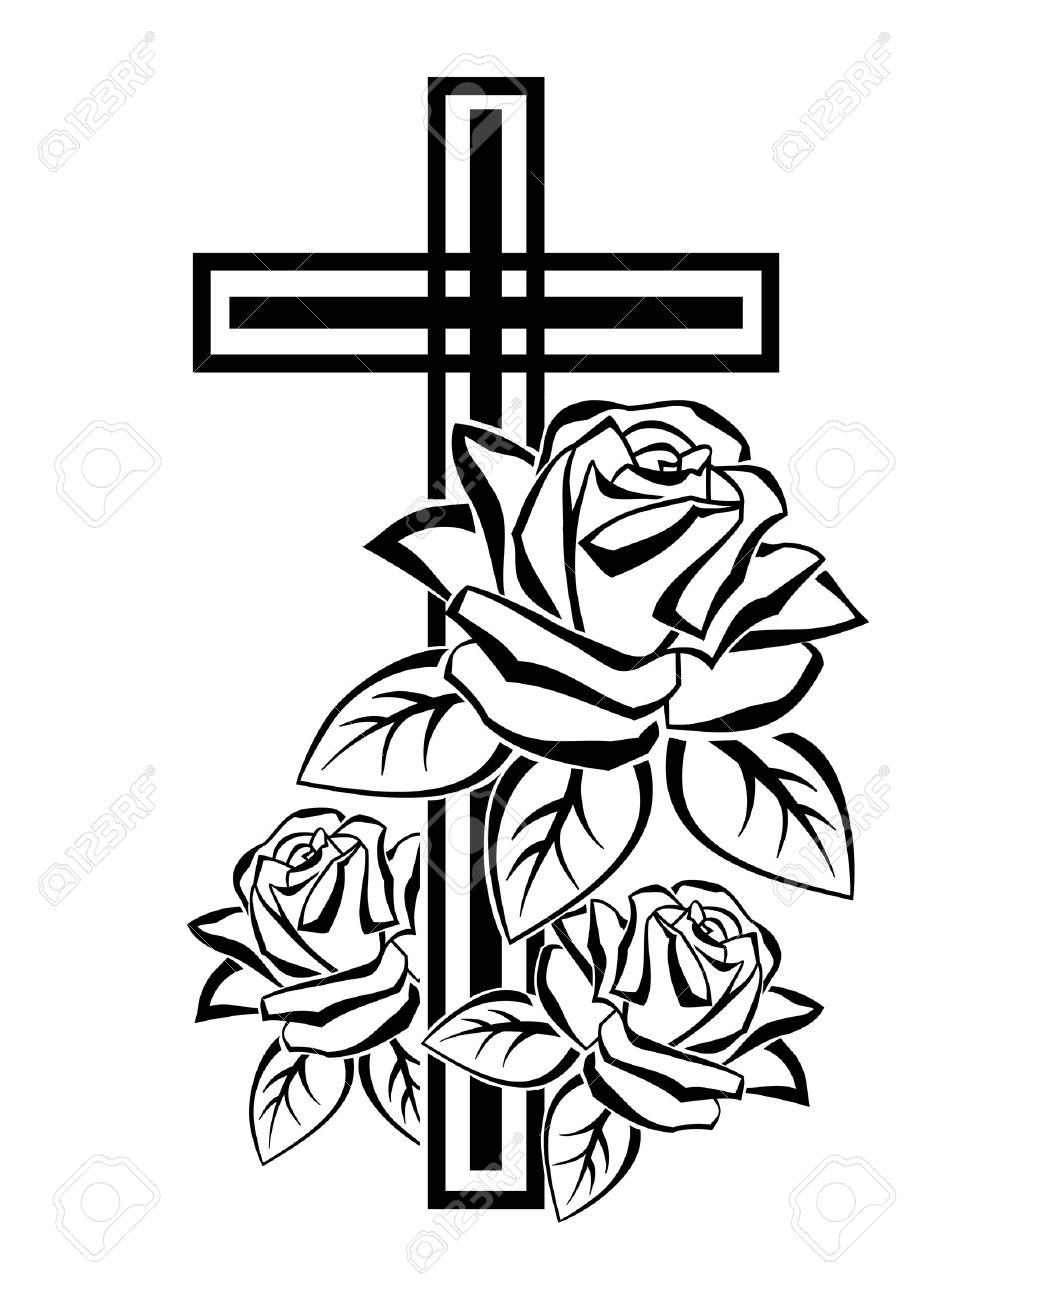 Black and white illustration of a crucifix contours with roses - 37071974